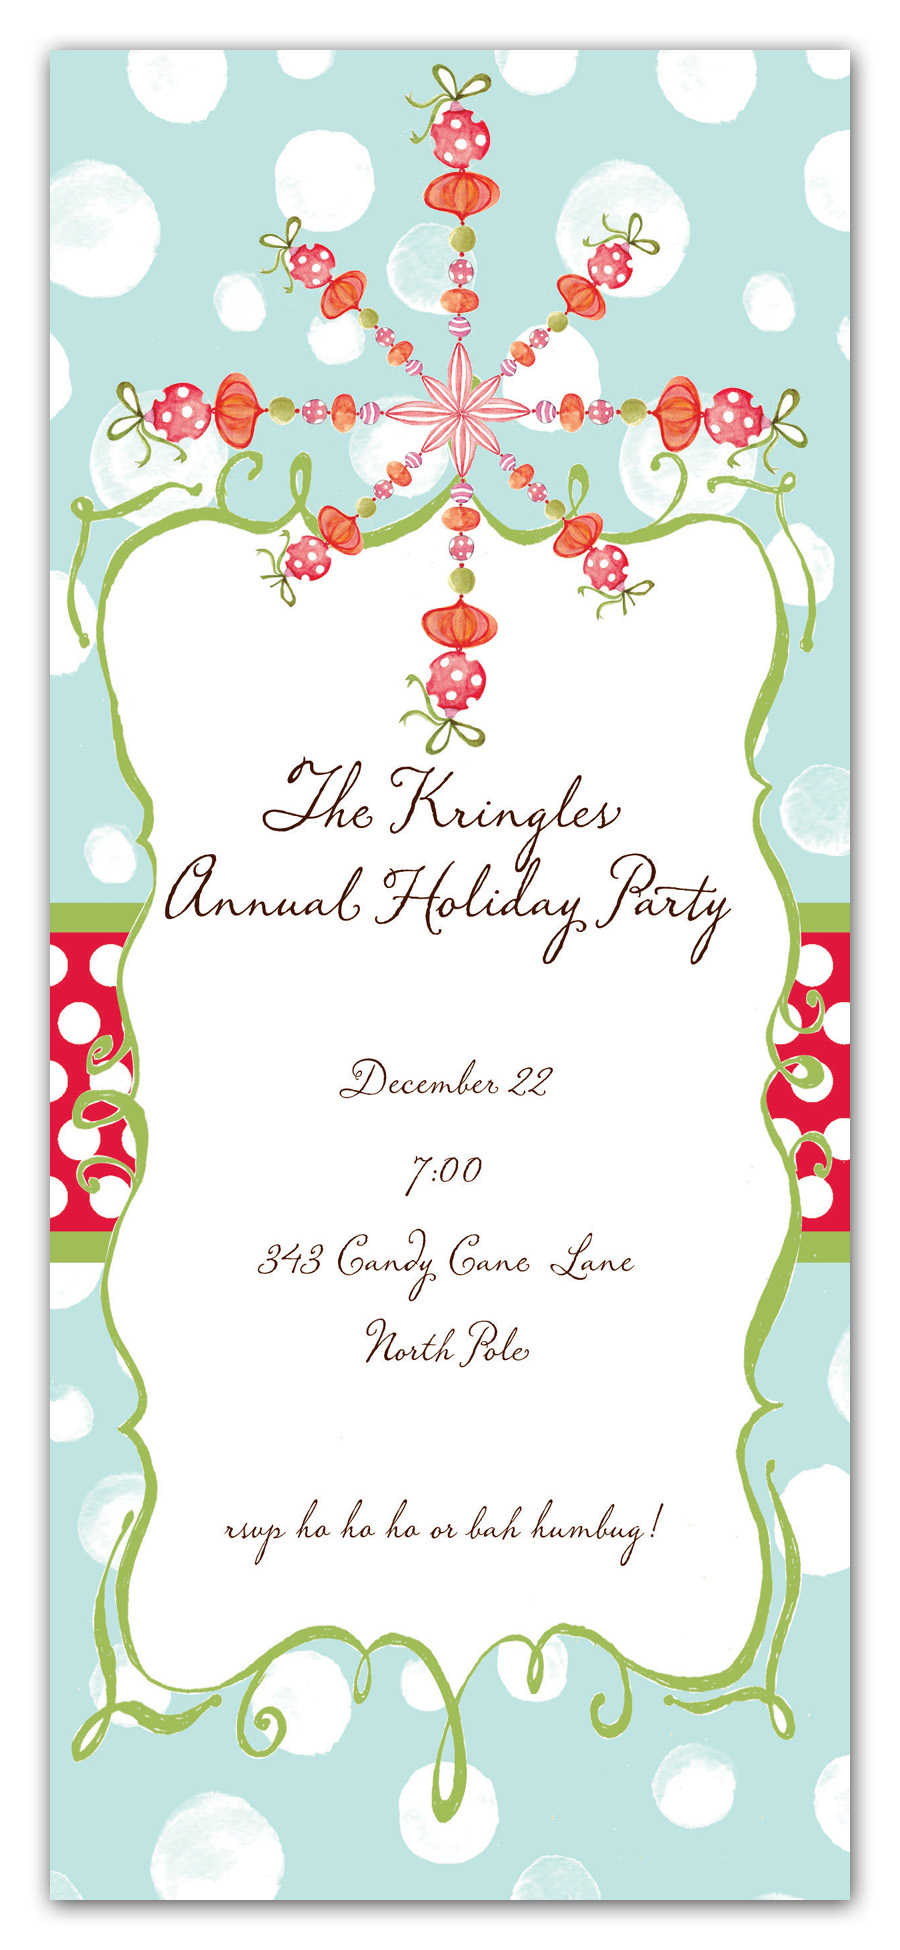 Christmas invitation templates cyberuse for Free holiday invitation templates